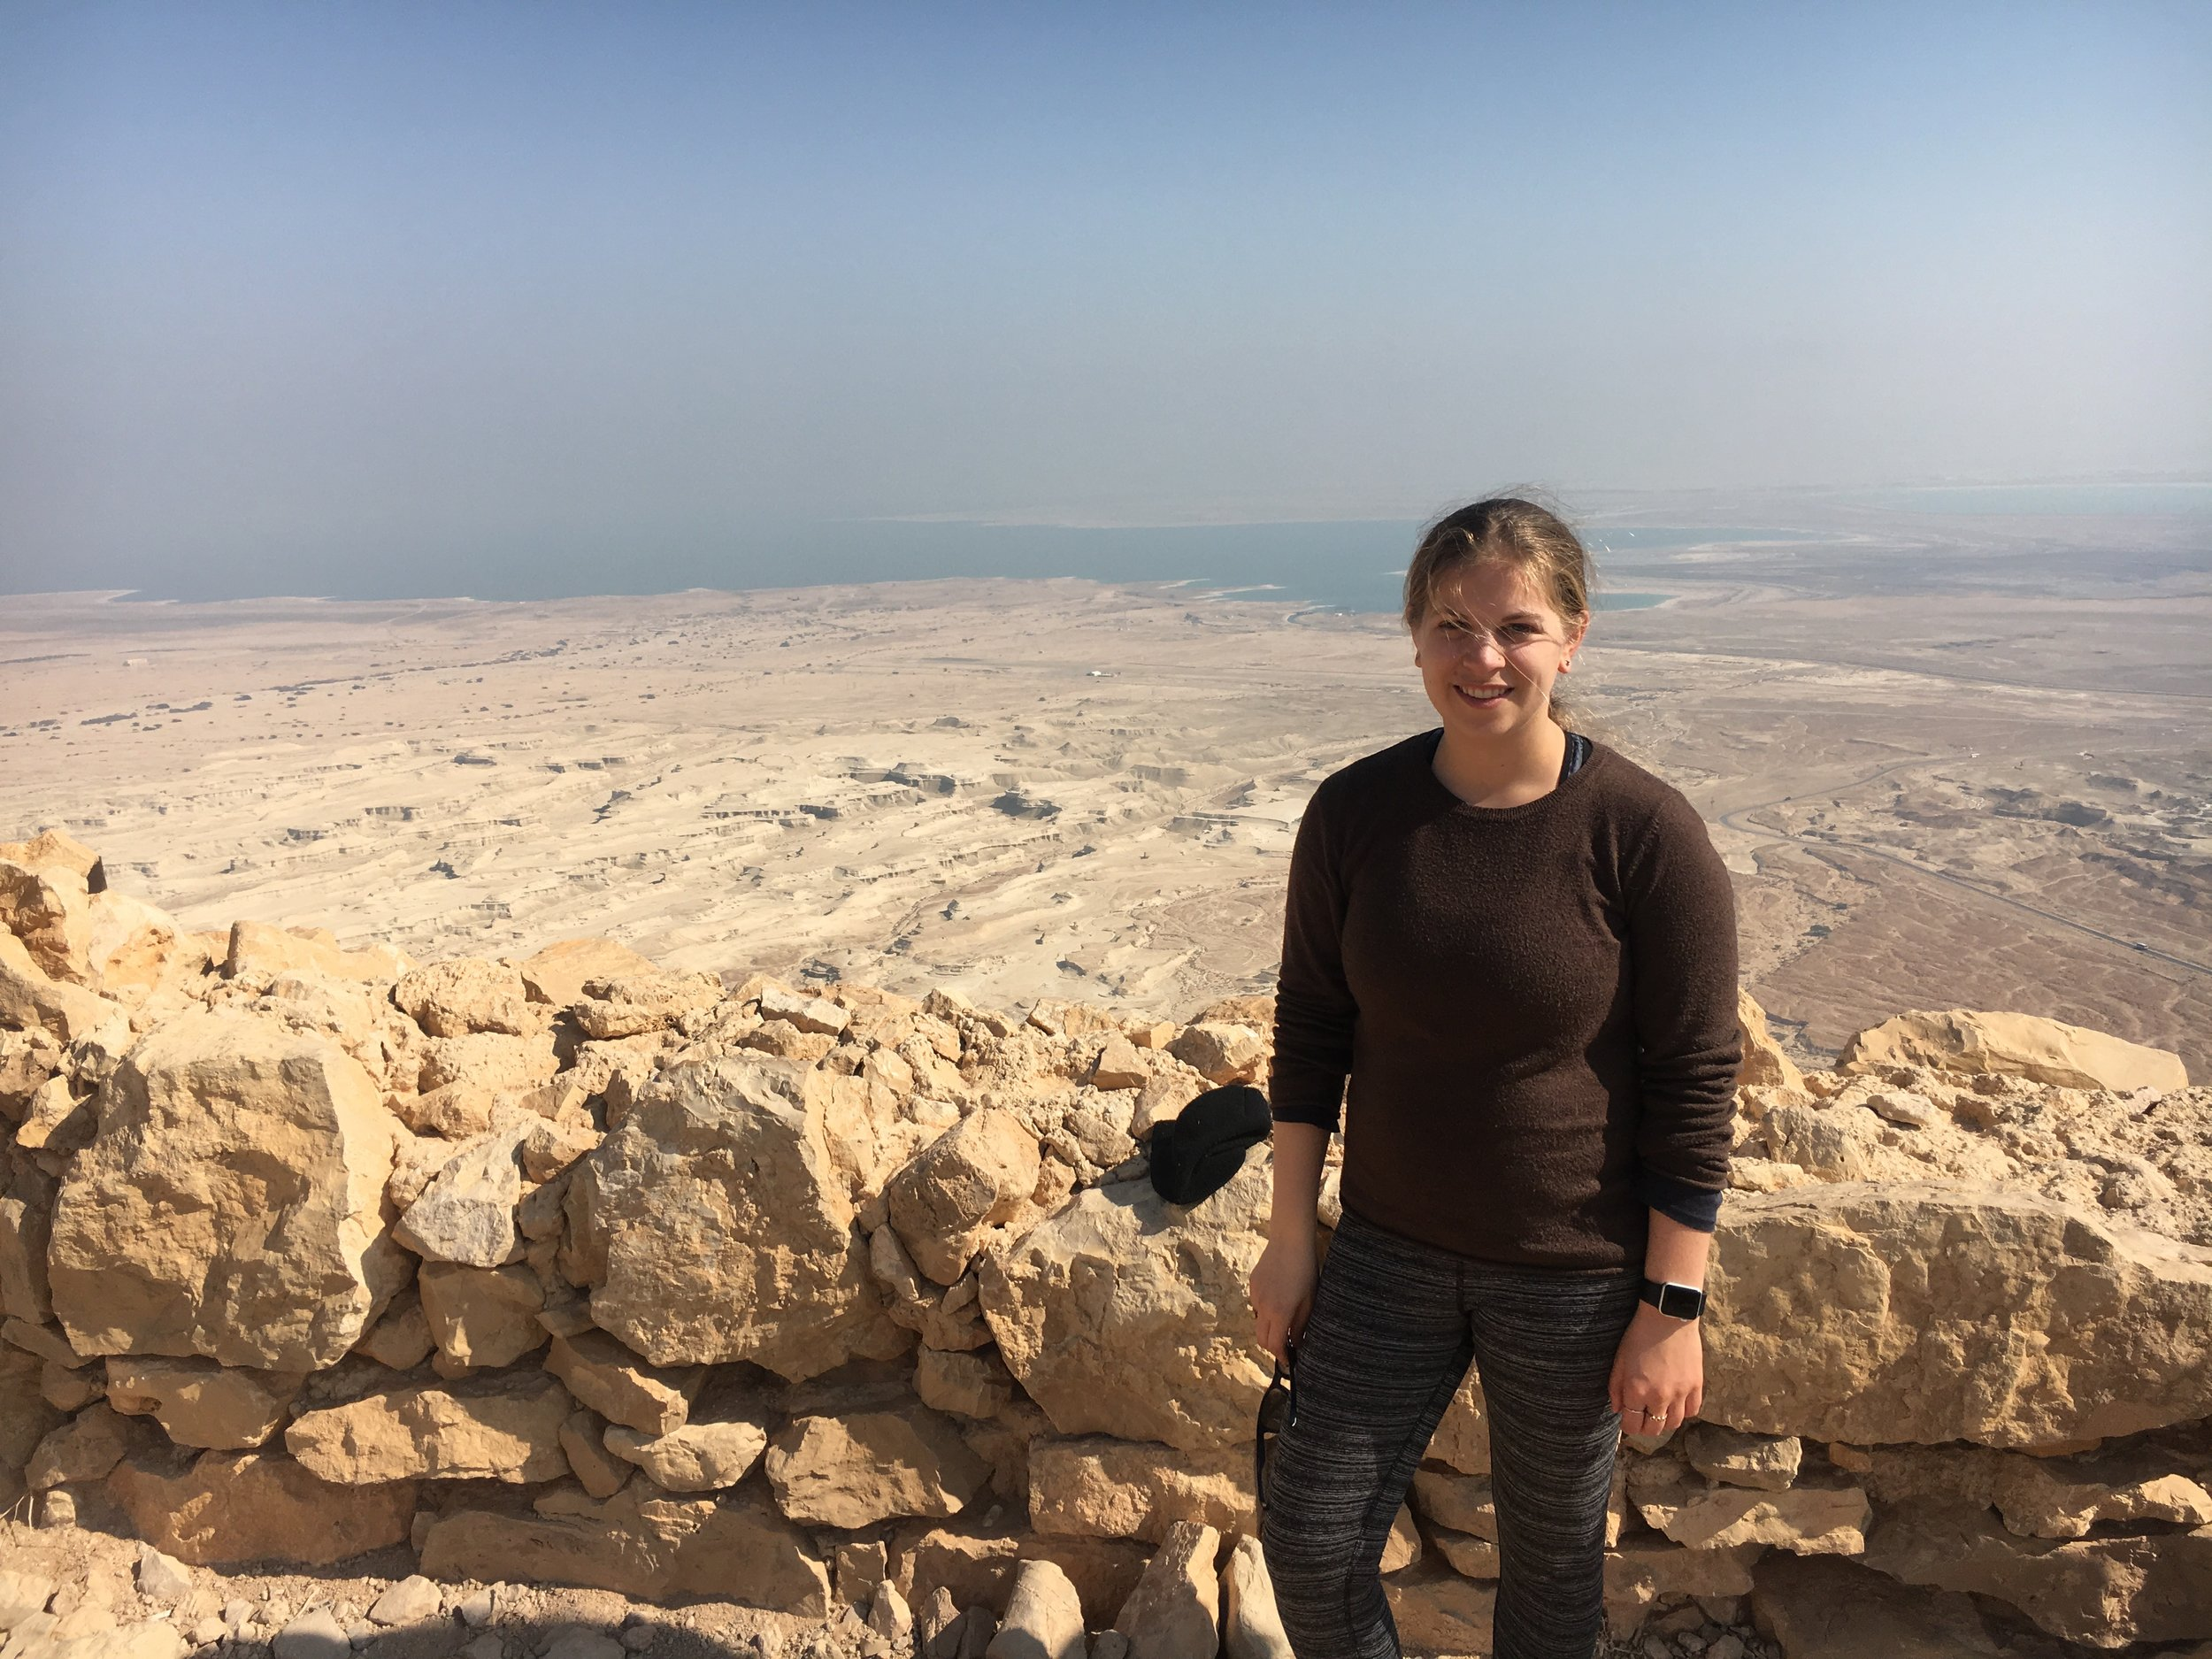 Me on top of Masada in Israel